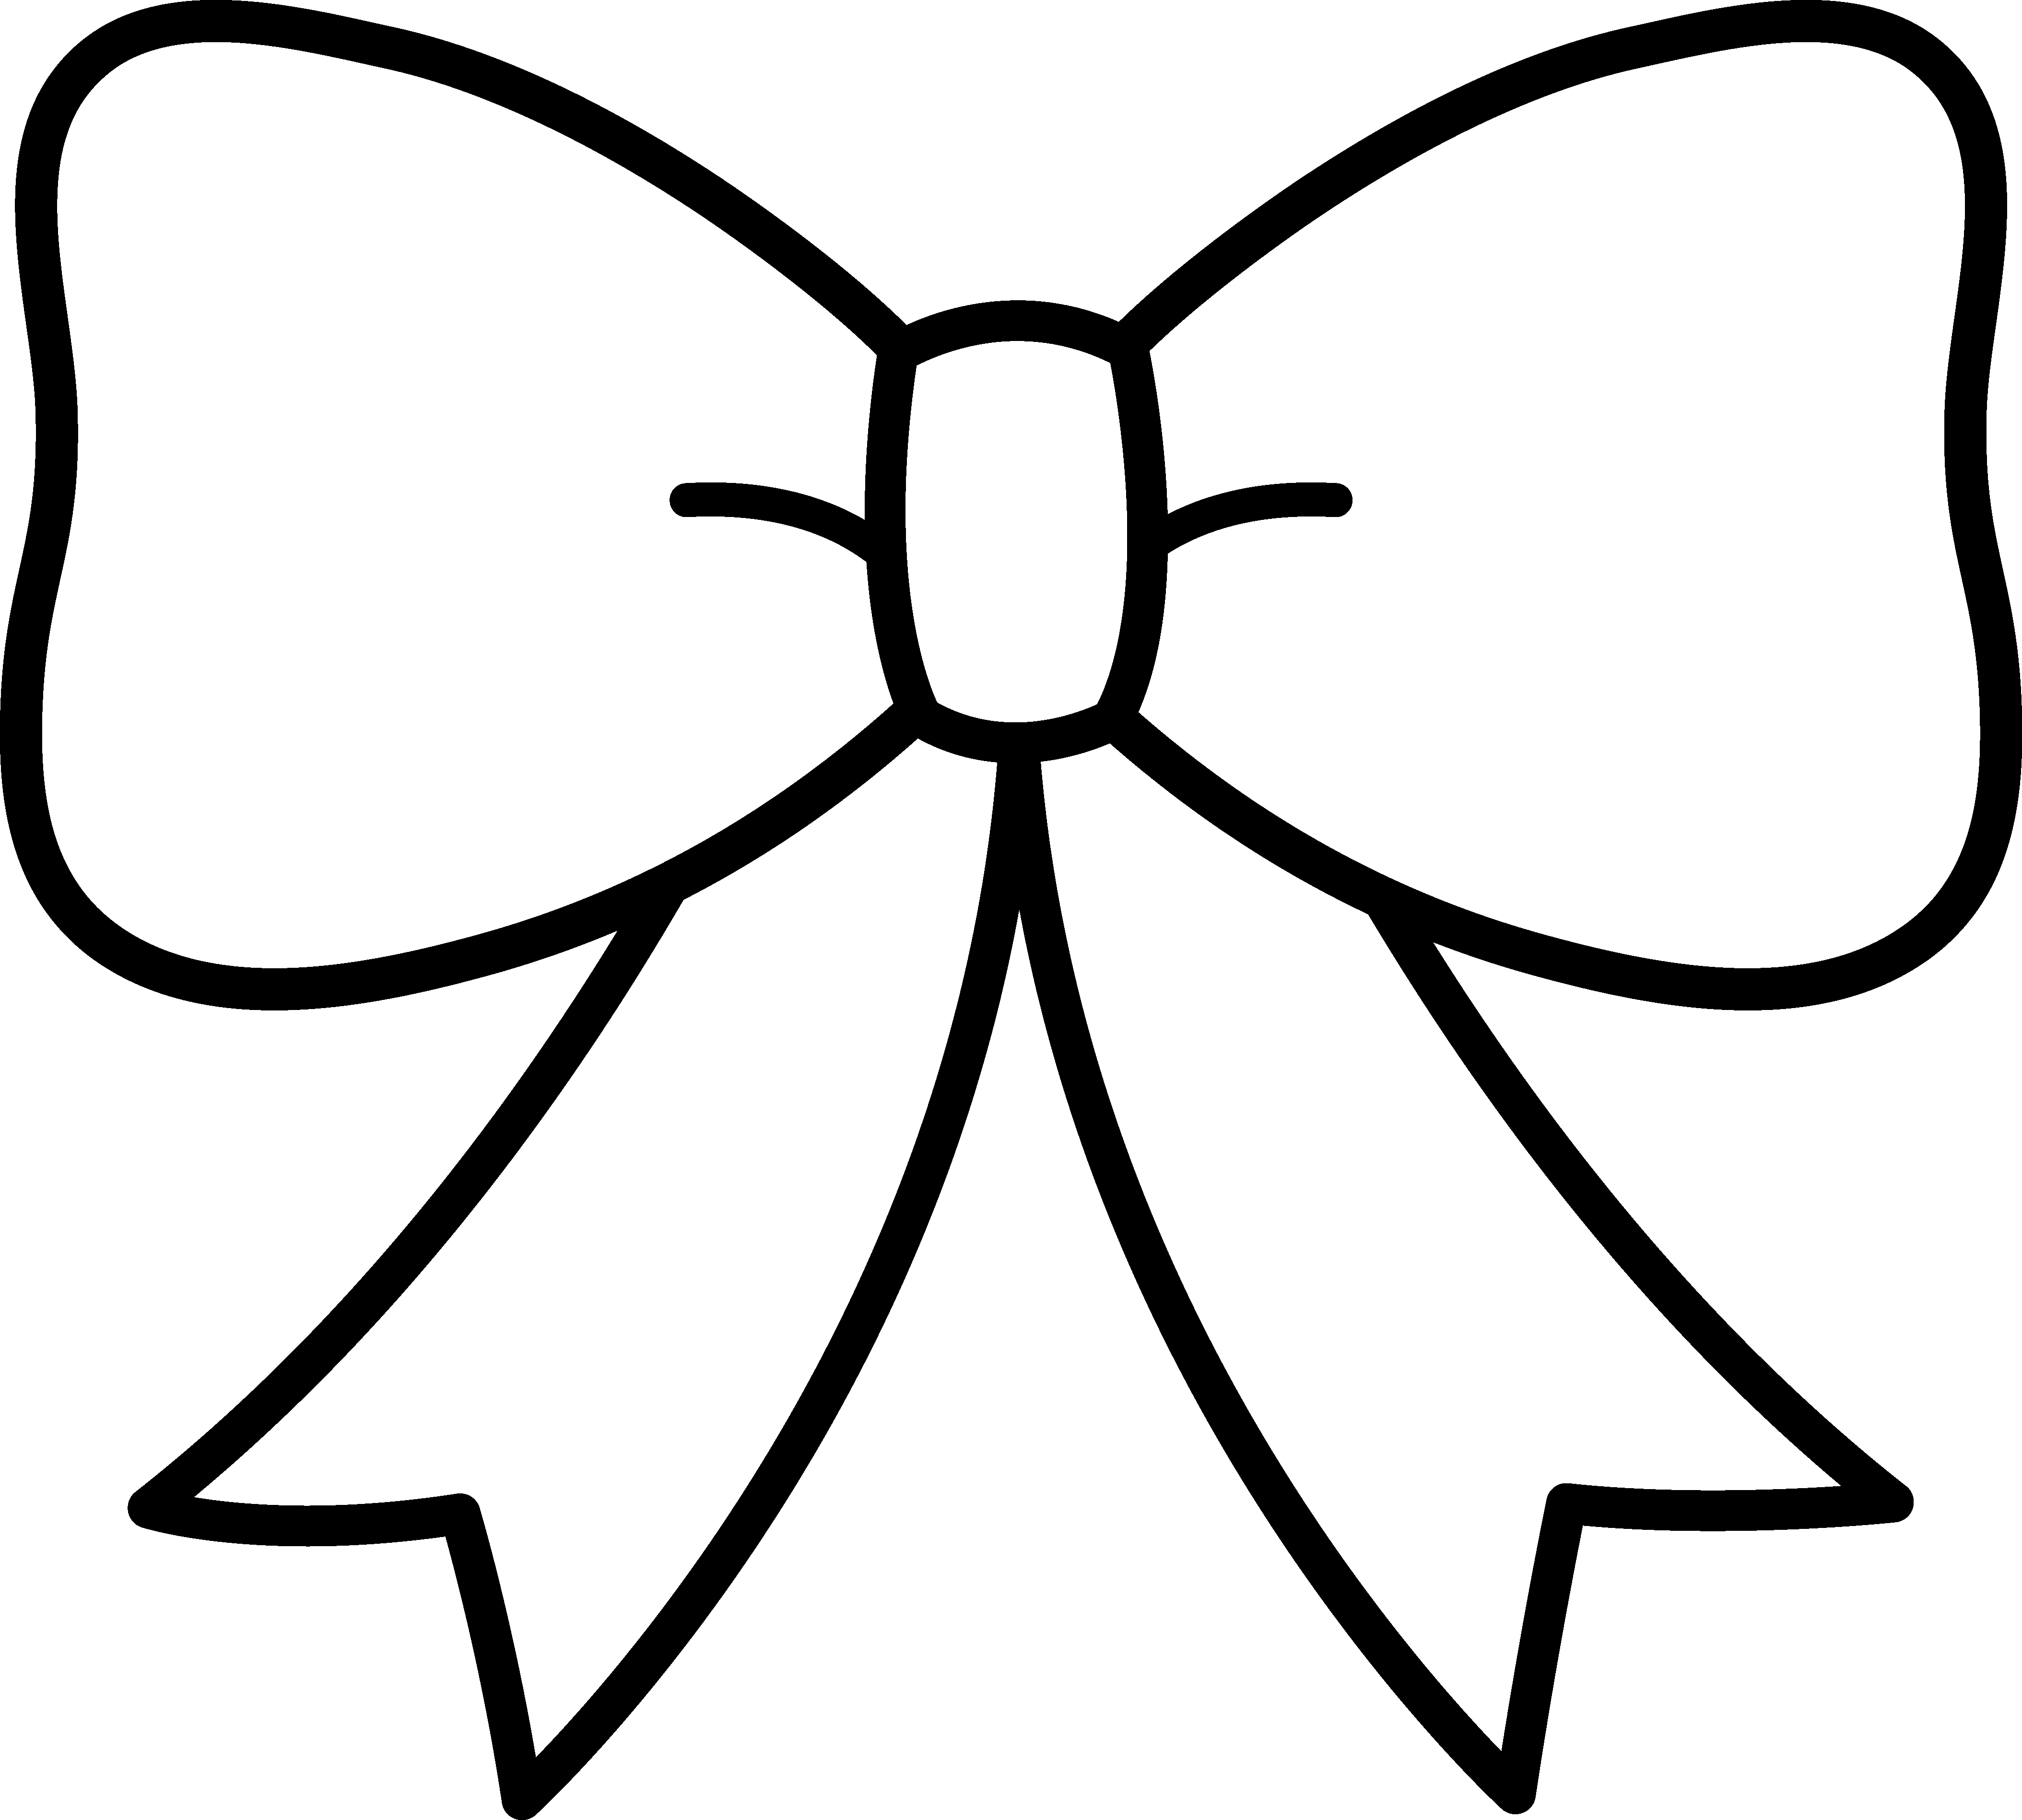 clipart bow tie outline - photo #4